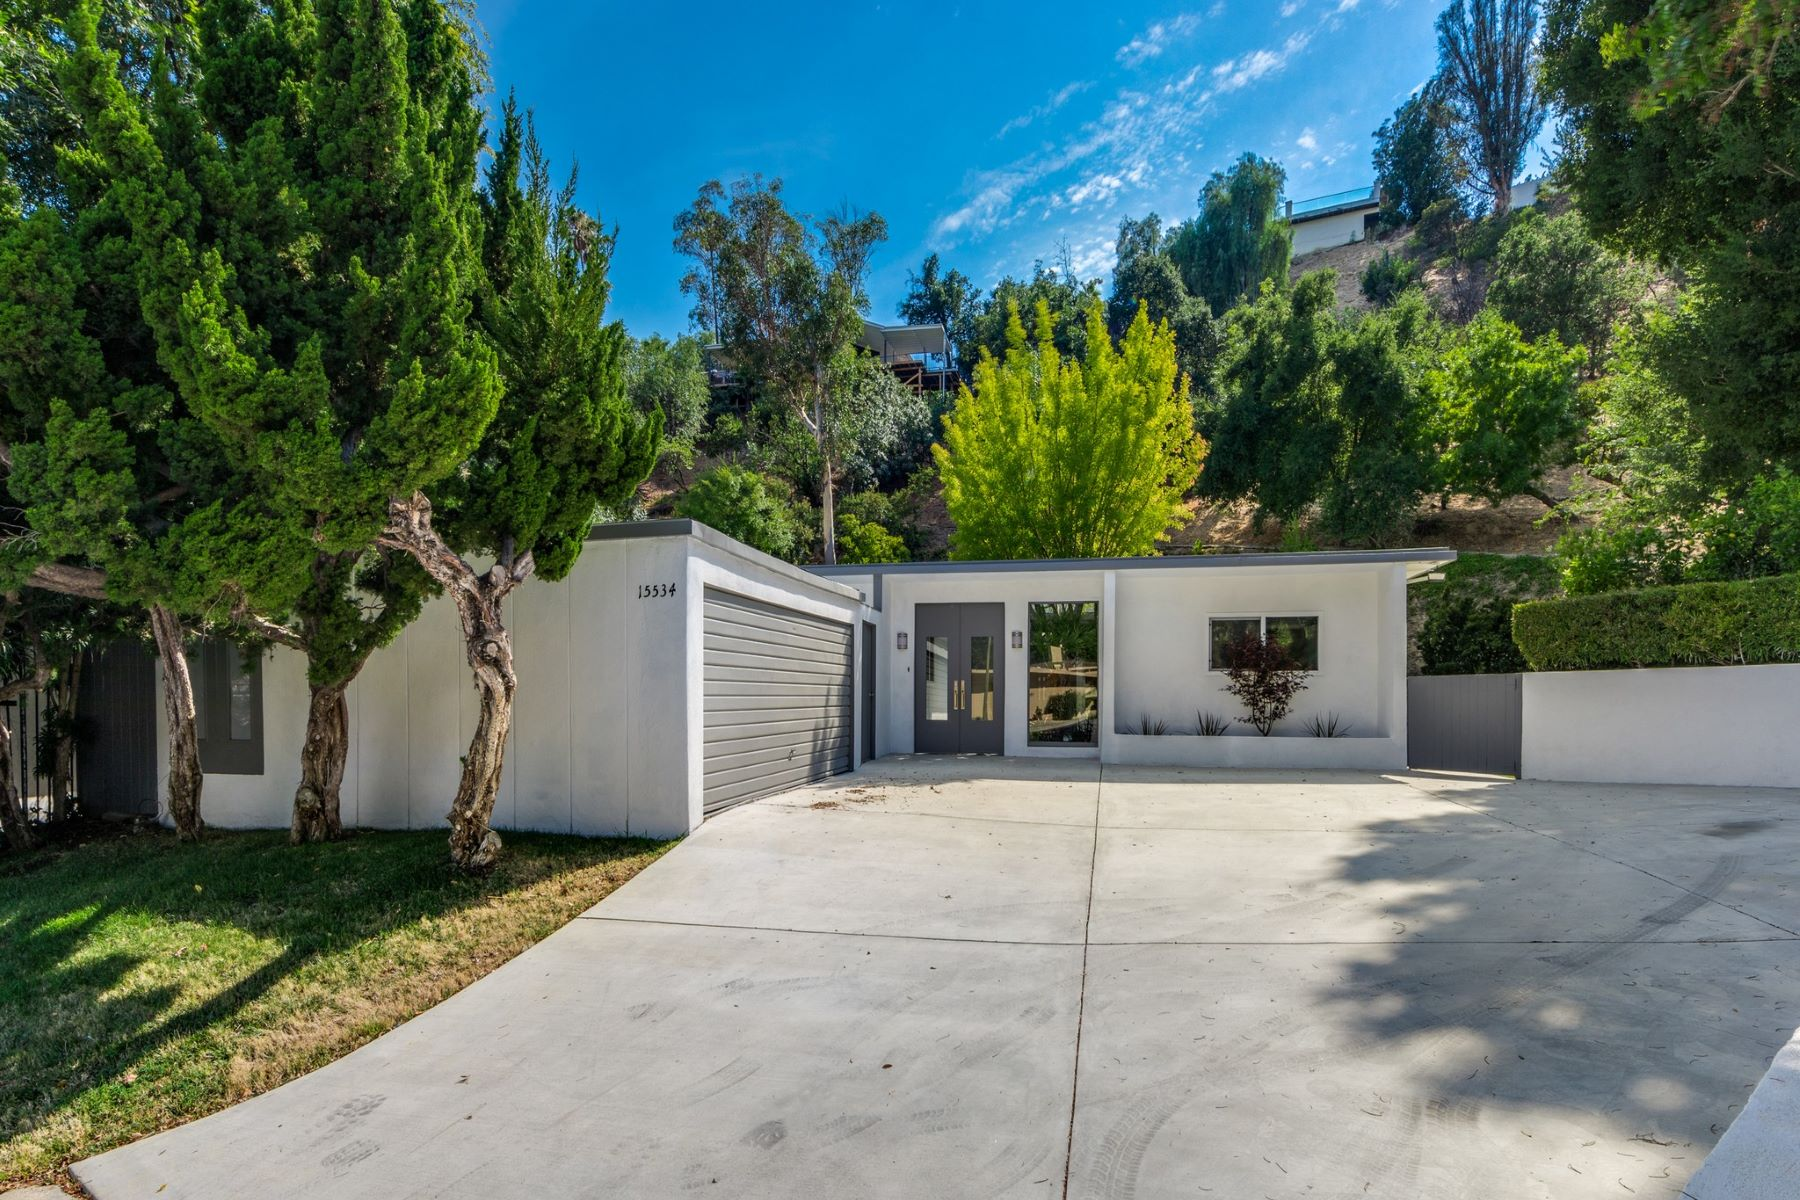 Single Family Home for Sale at 15534 High Knoll Rd Encino, California 91436 United States